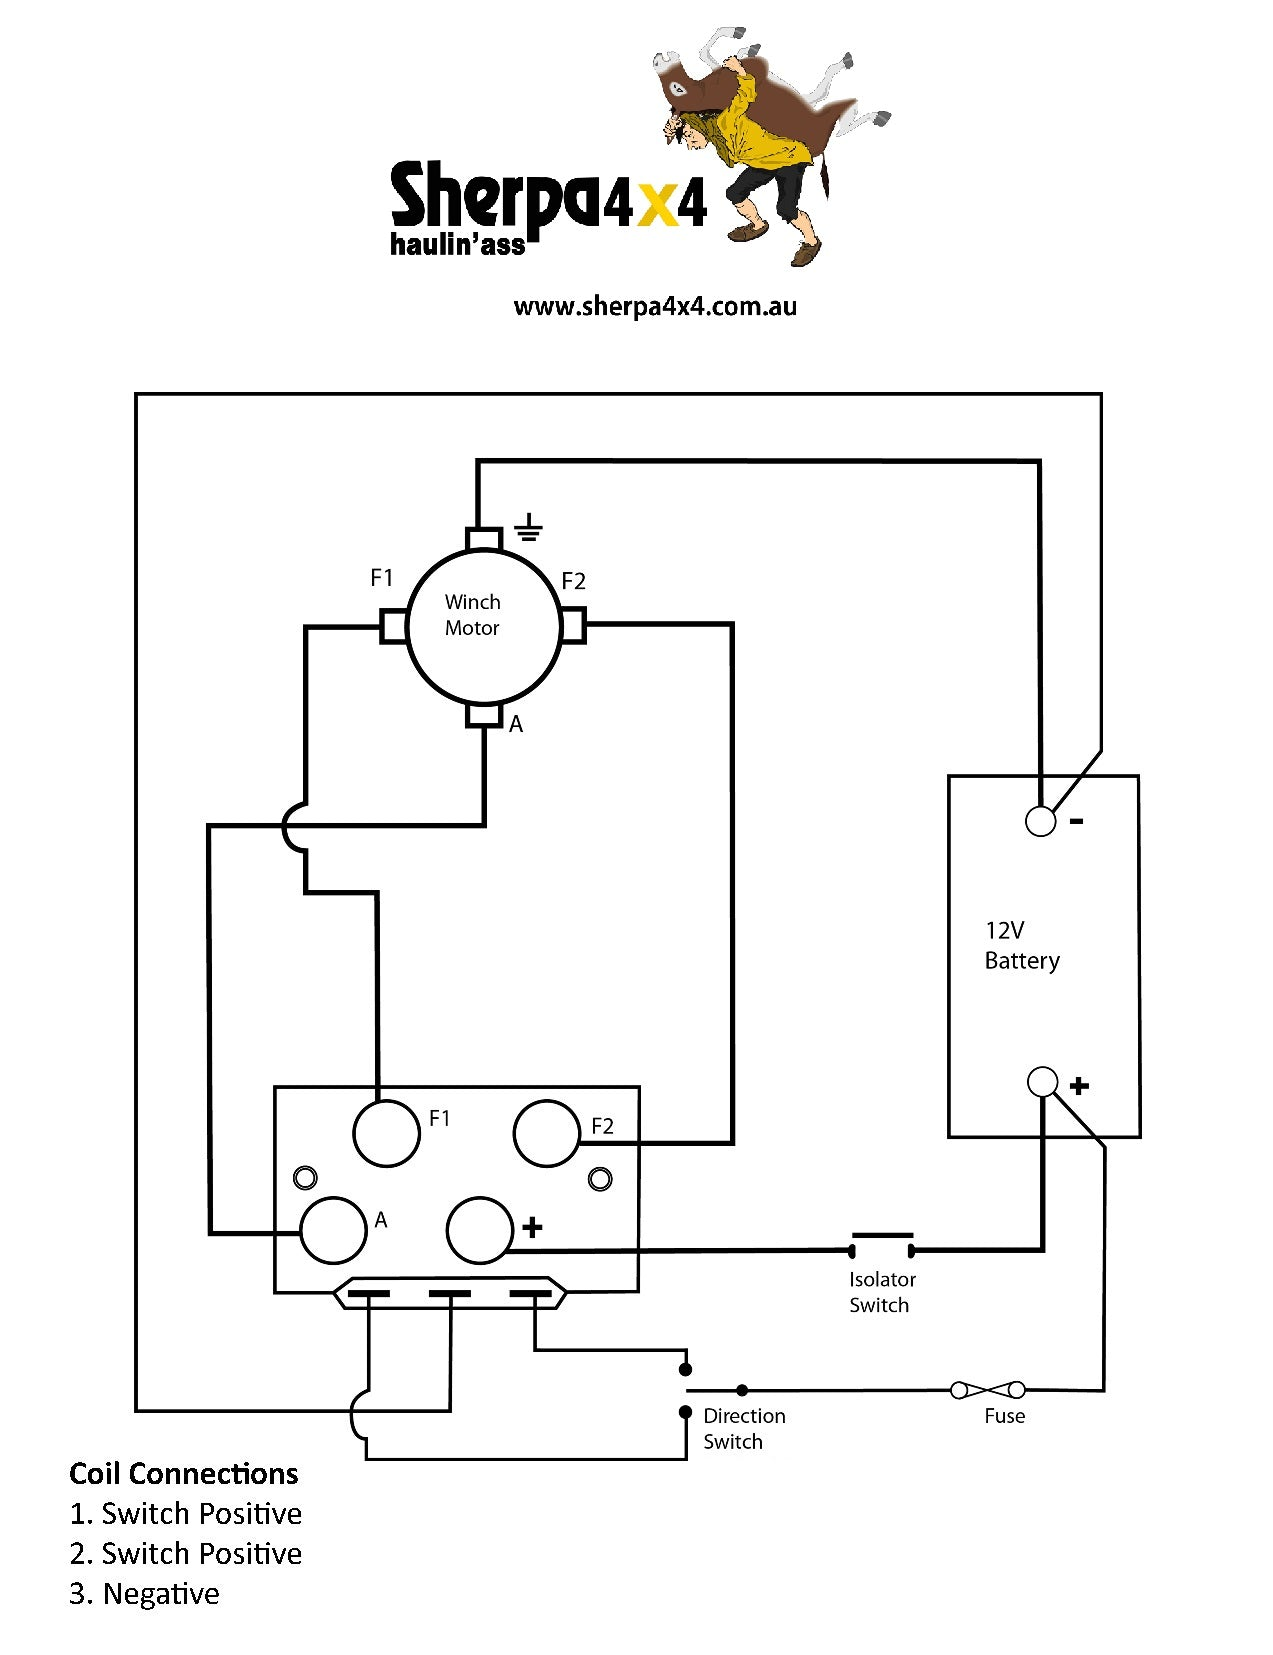 Sherpa_4x4_Winch_Wiring_Diagram?12240005484949772751 genuine albright winch solenoids 12 volt 24 volt dc88p sherpa 4x4 albright contactor wiring diagram at bayanpartner.co